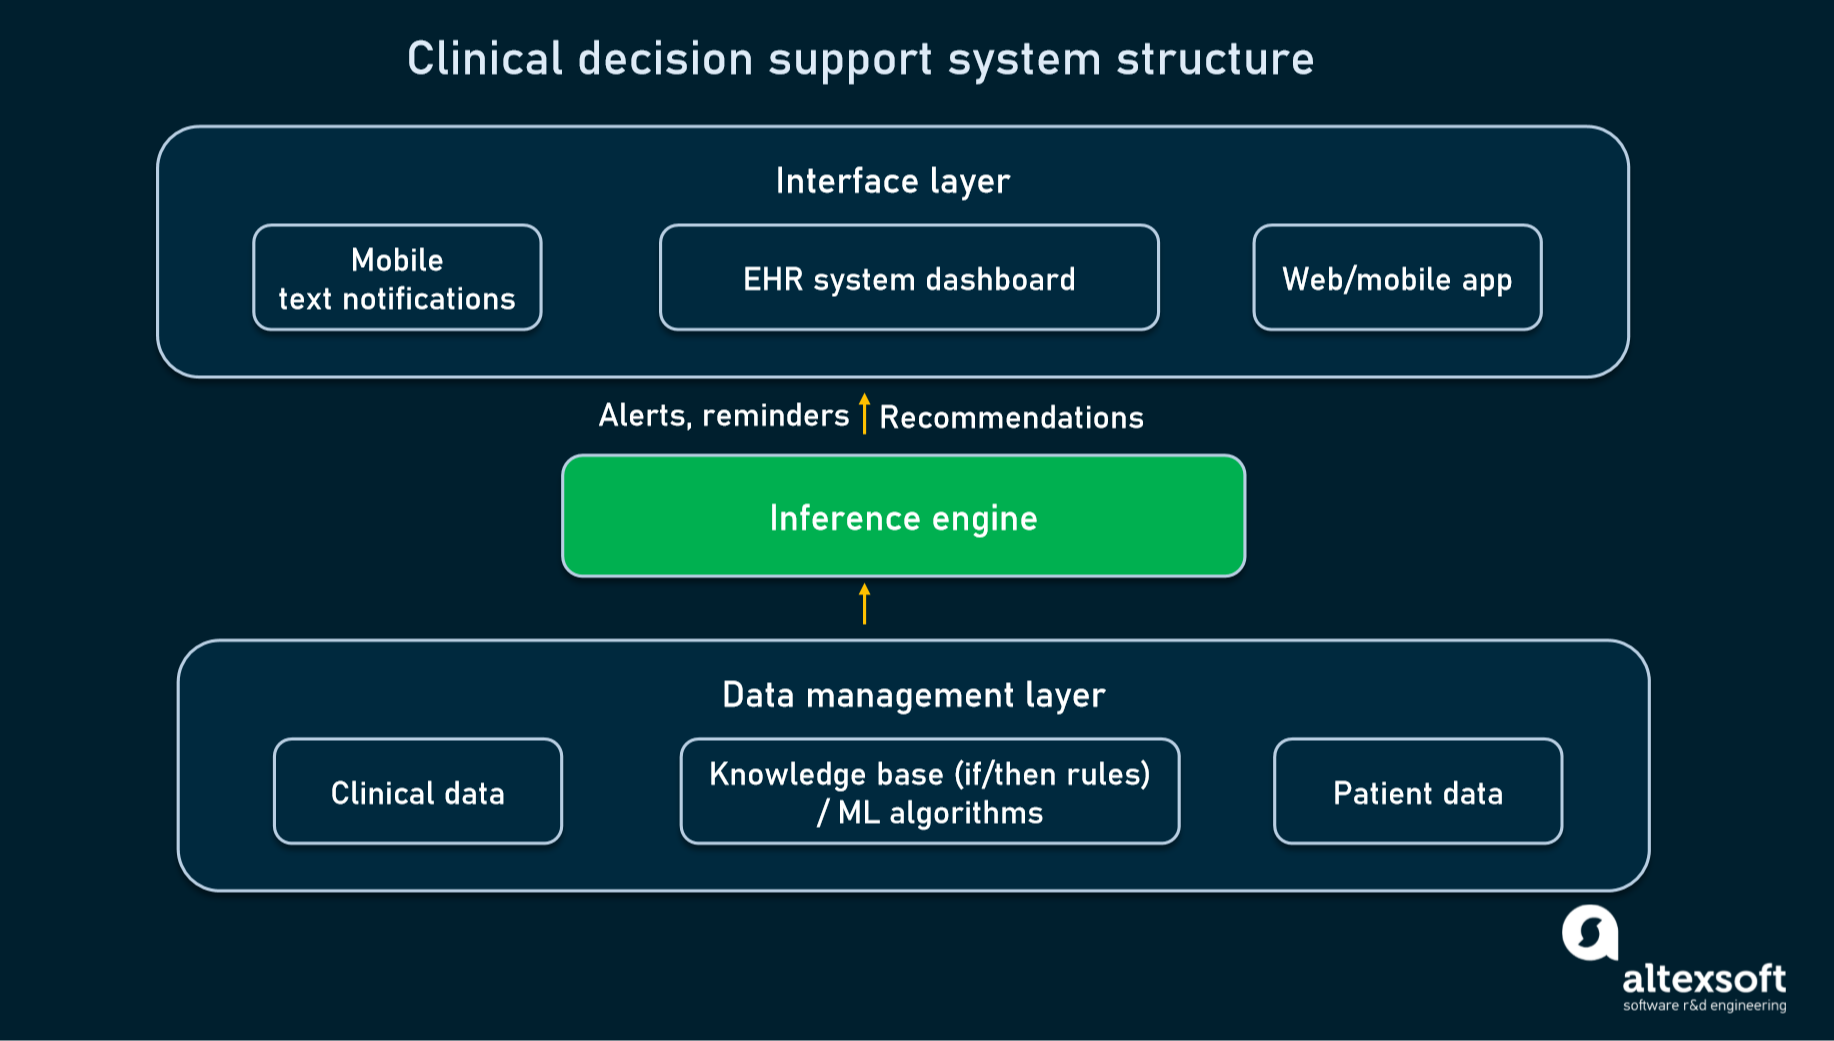 Core modules of a typical clinical decision support system